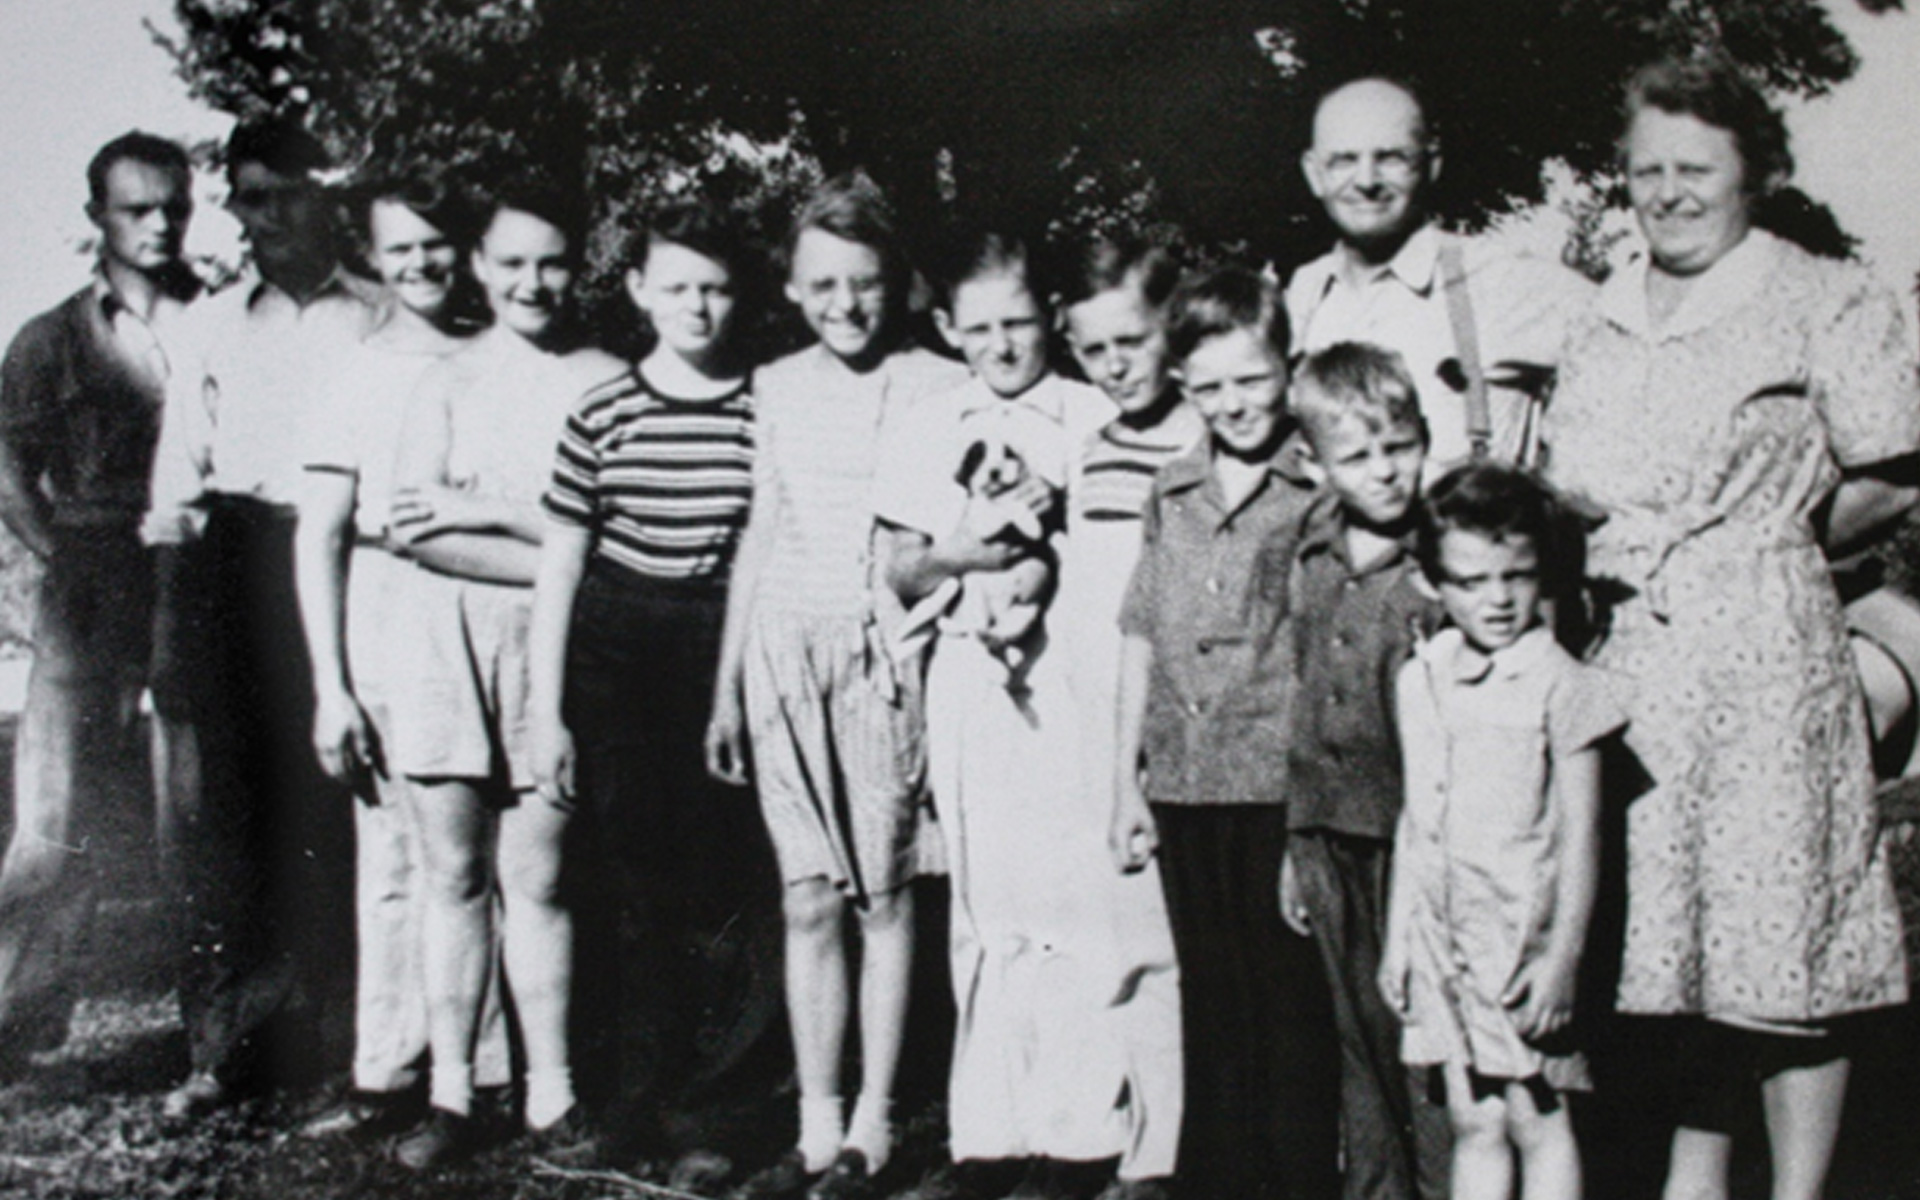 Wm. T. Spaeder's family photo from the 1940's